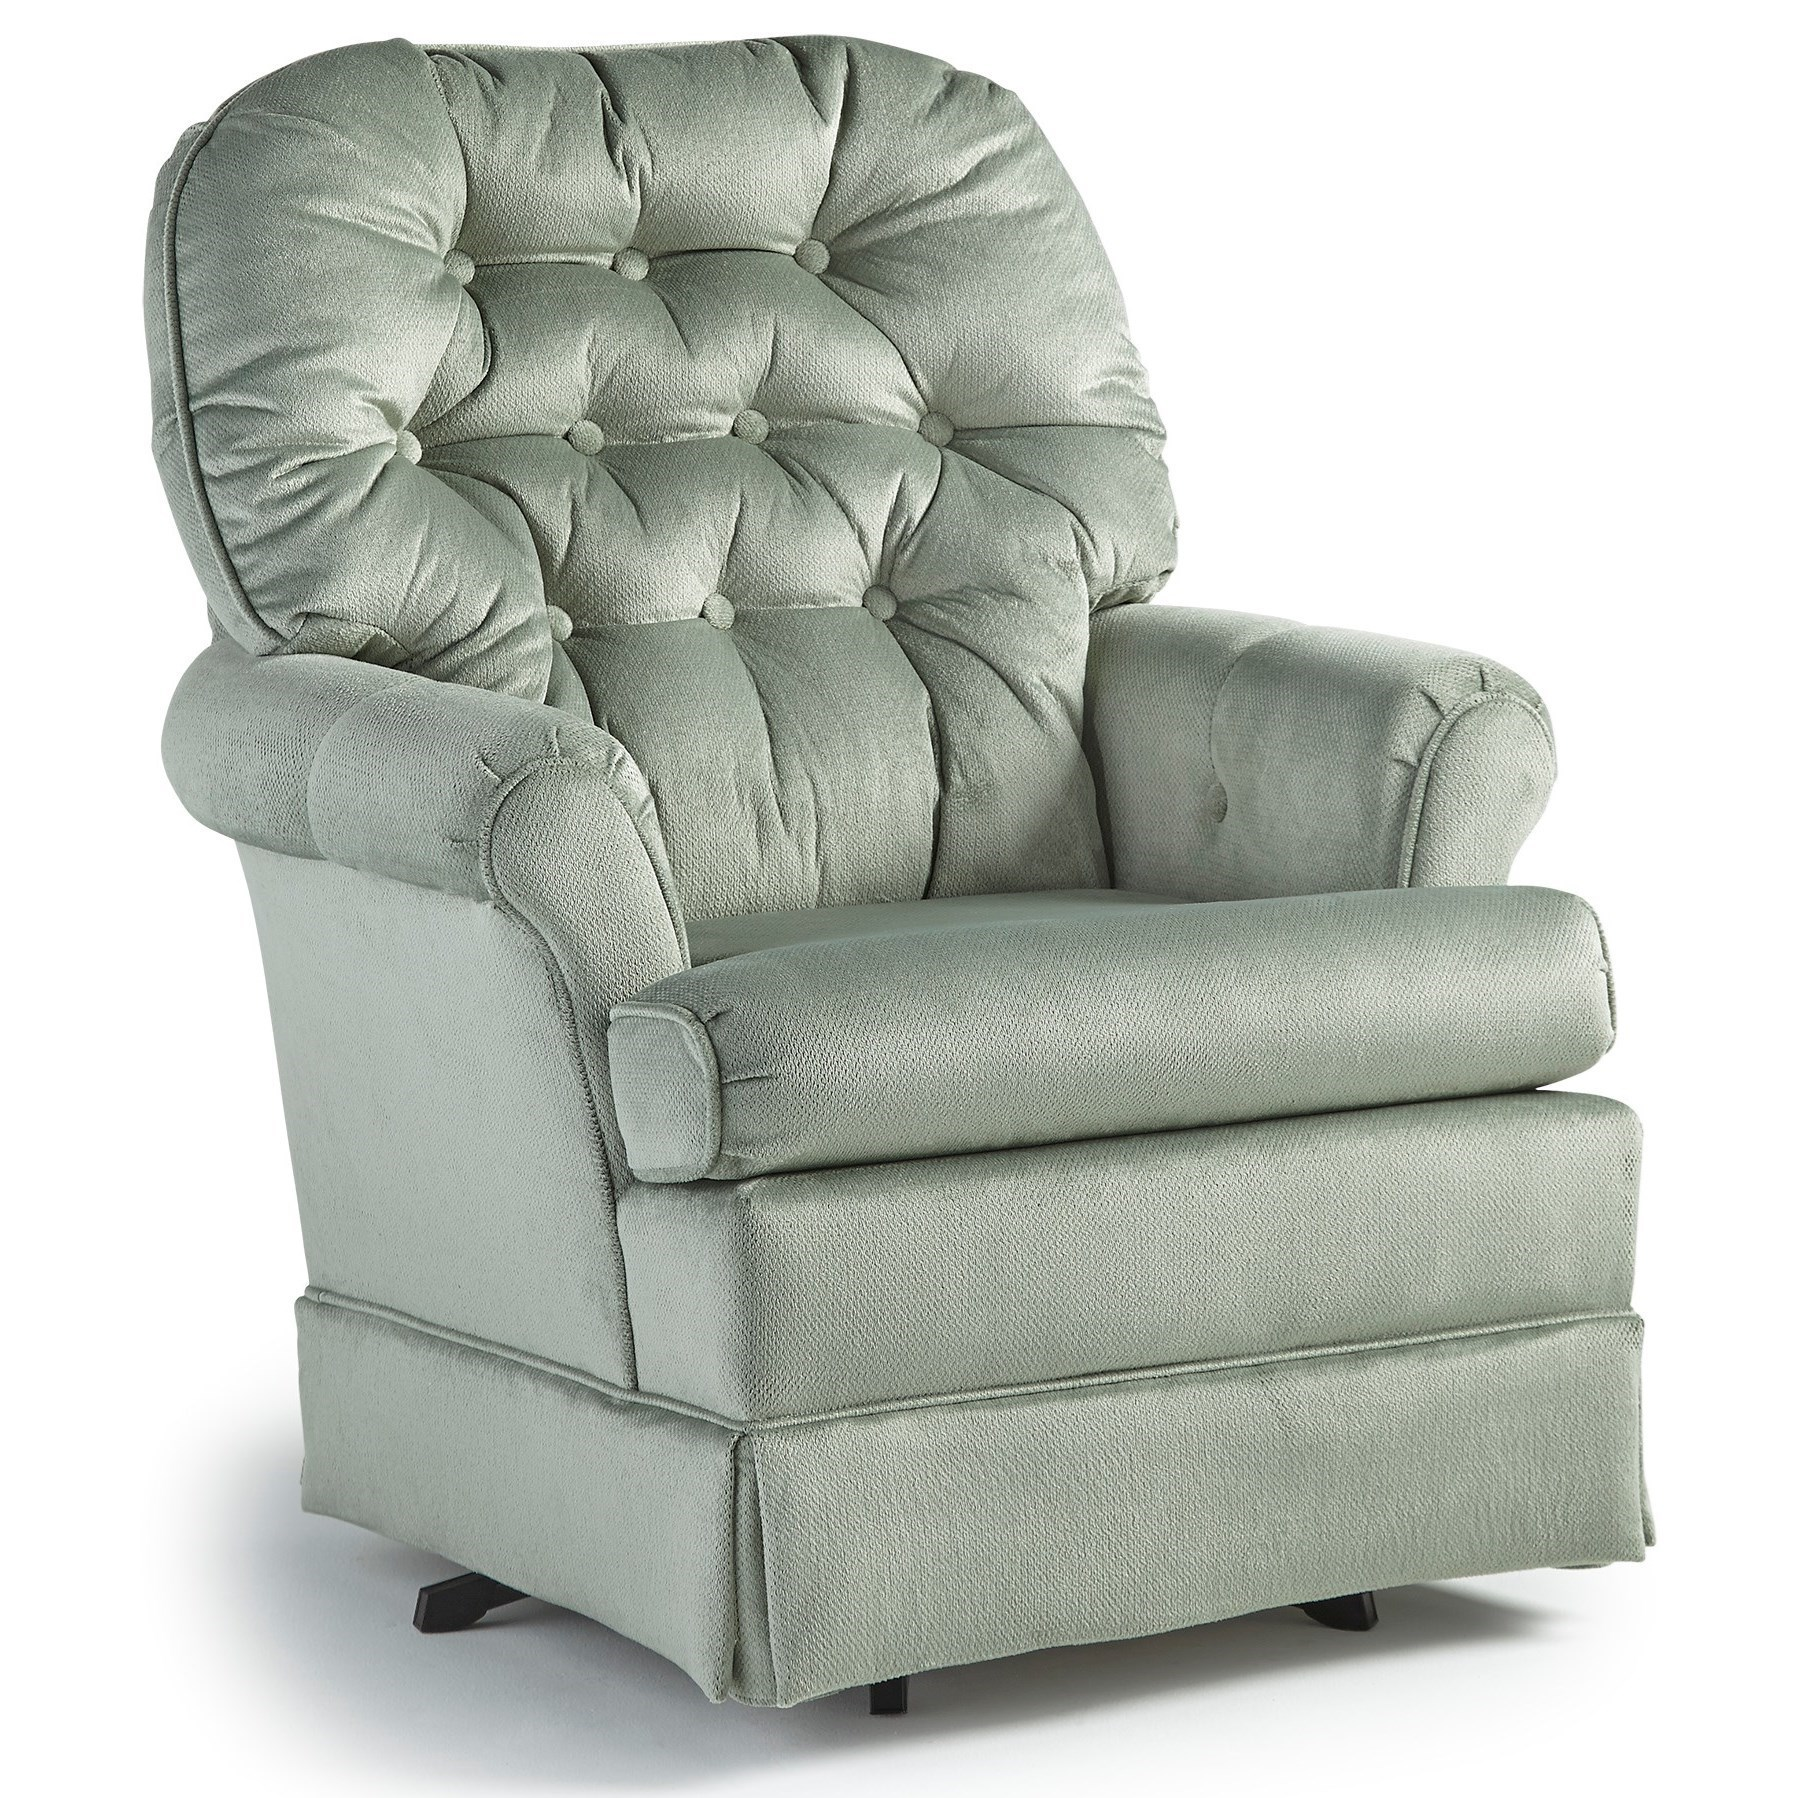 Wonderful Best Home Furnishings Swivel Glide ChairsMarla Swivel Rocker Chair